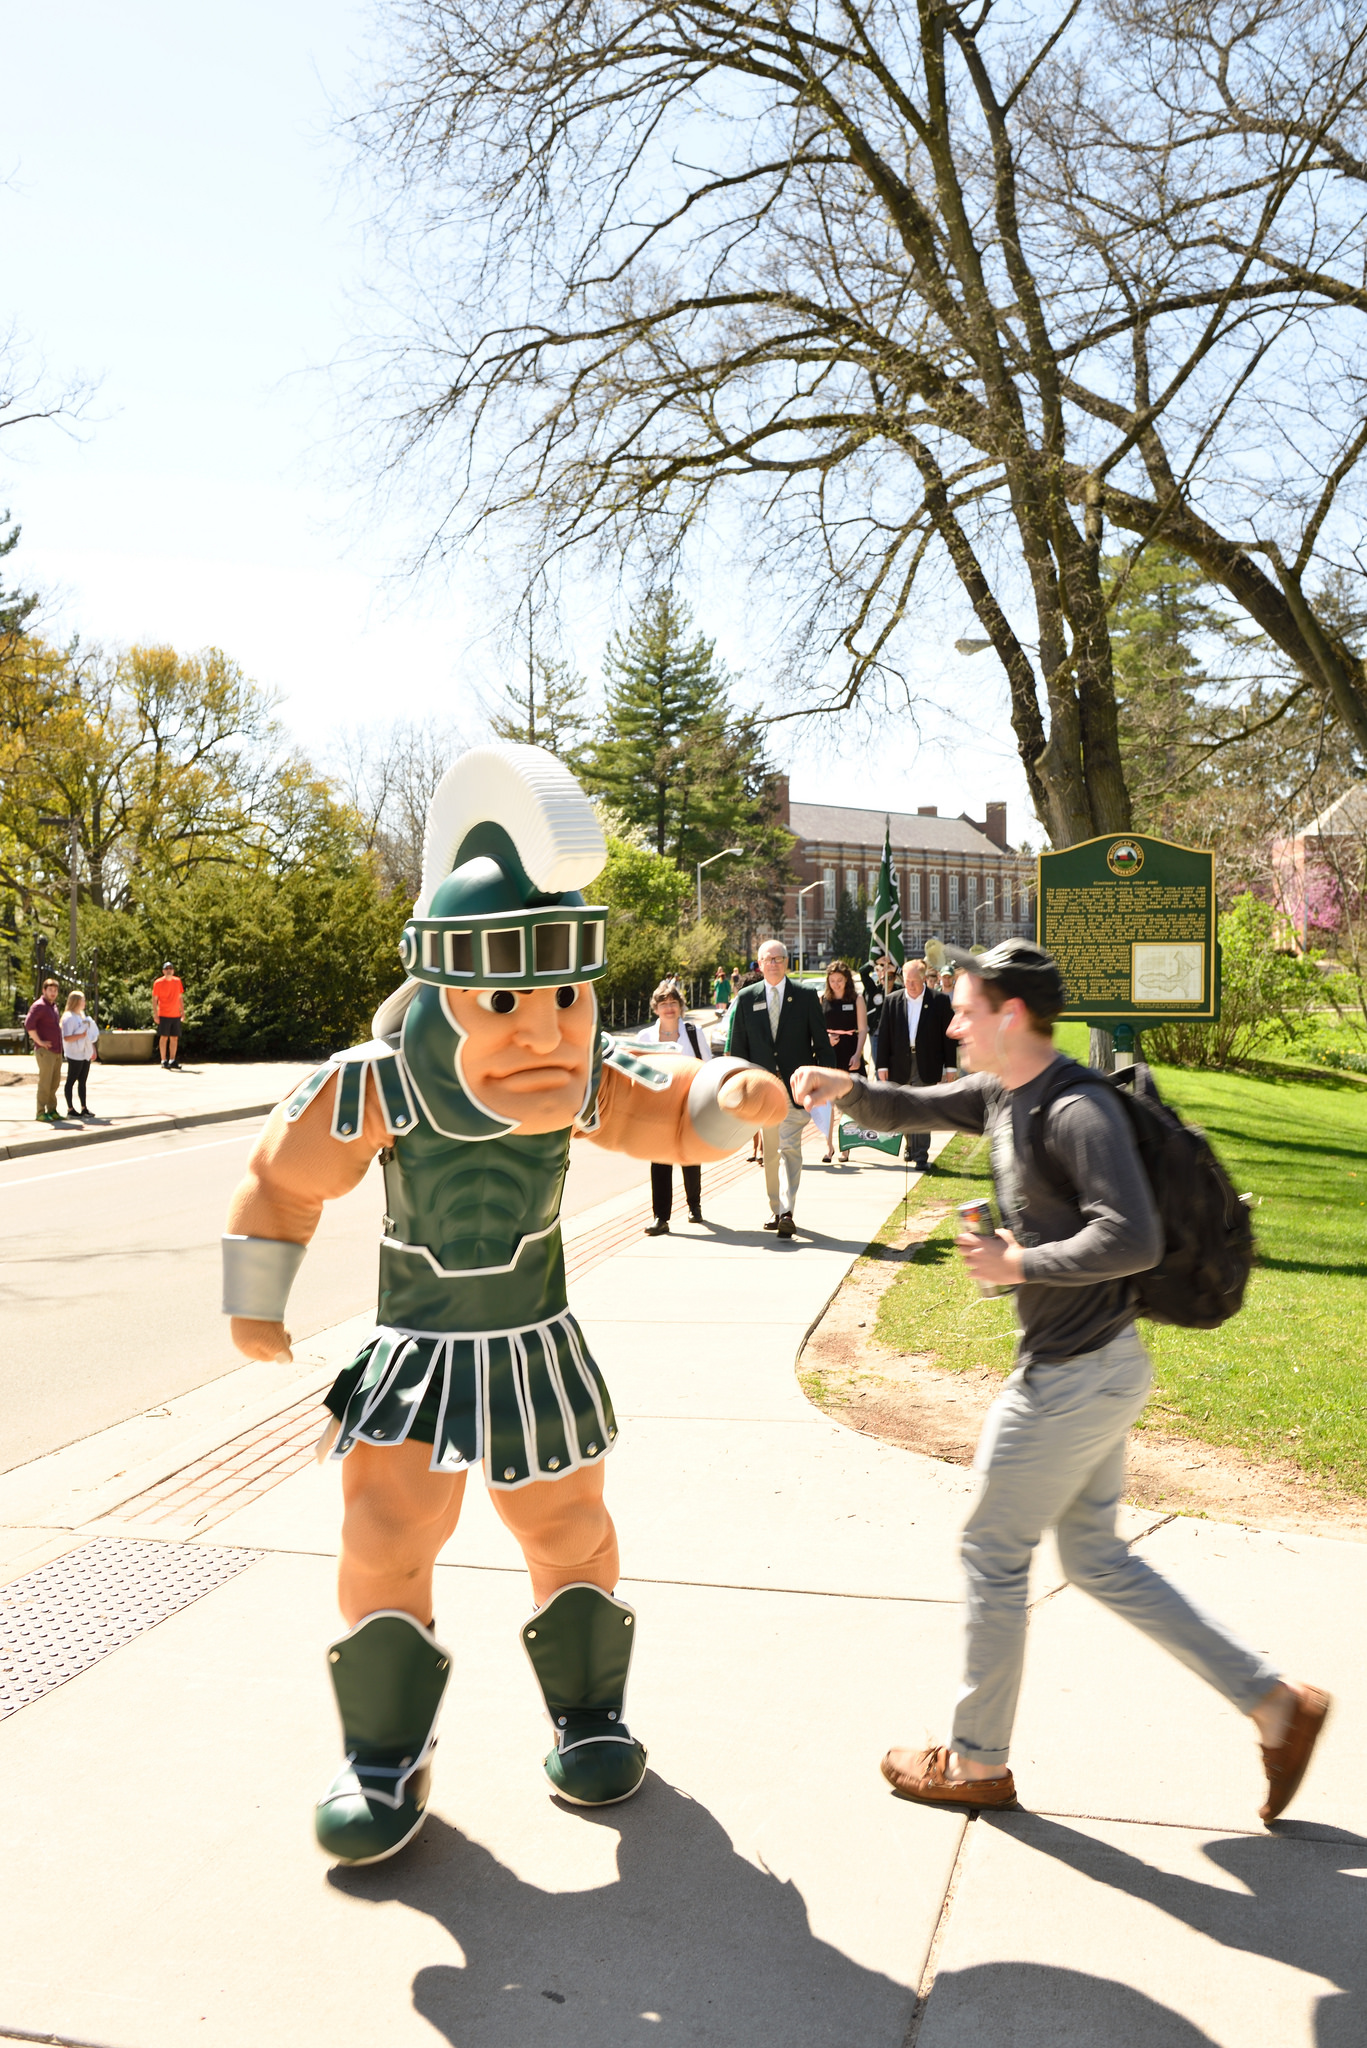 Sparty and students on campus